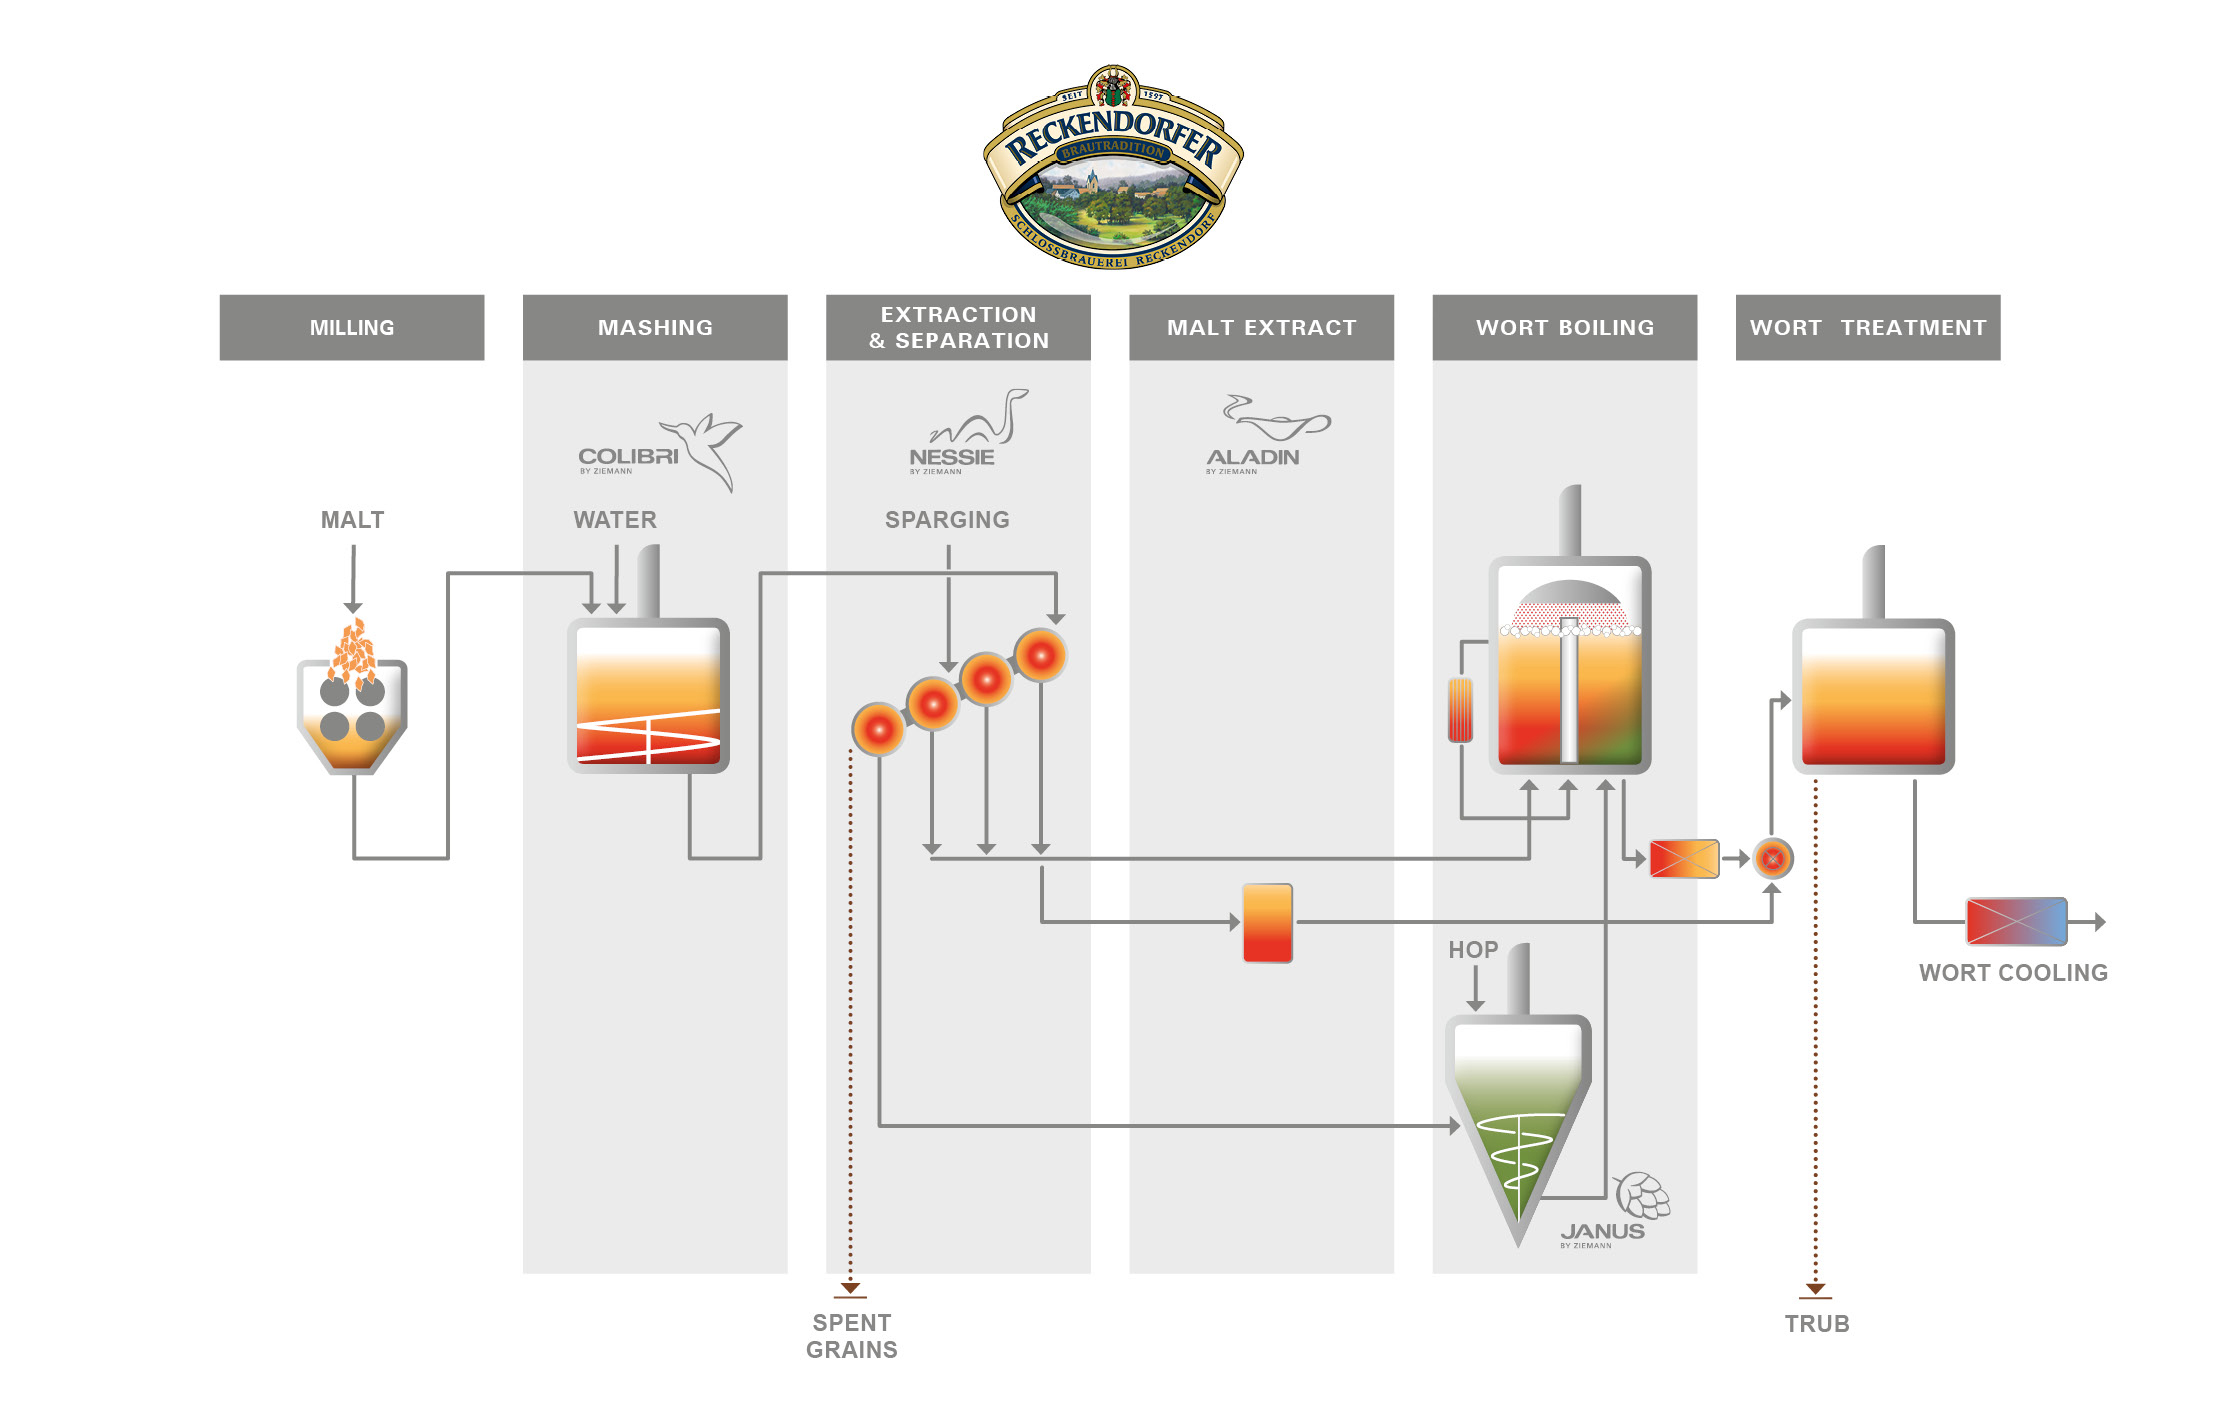 Fig. 1: Process diagram of the OMNIUM brewhouse of Schlossbrauerei Reckendorf.